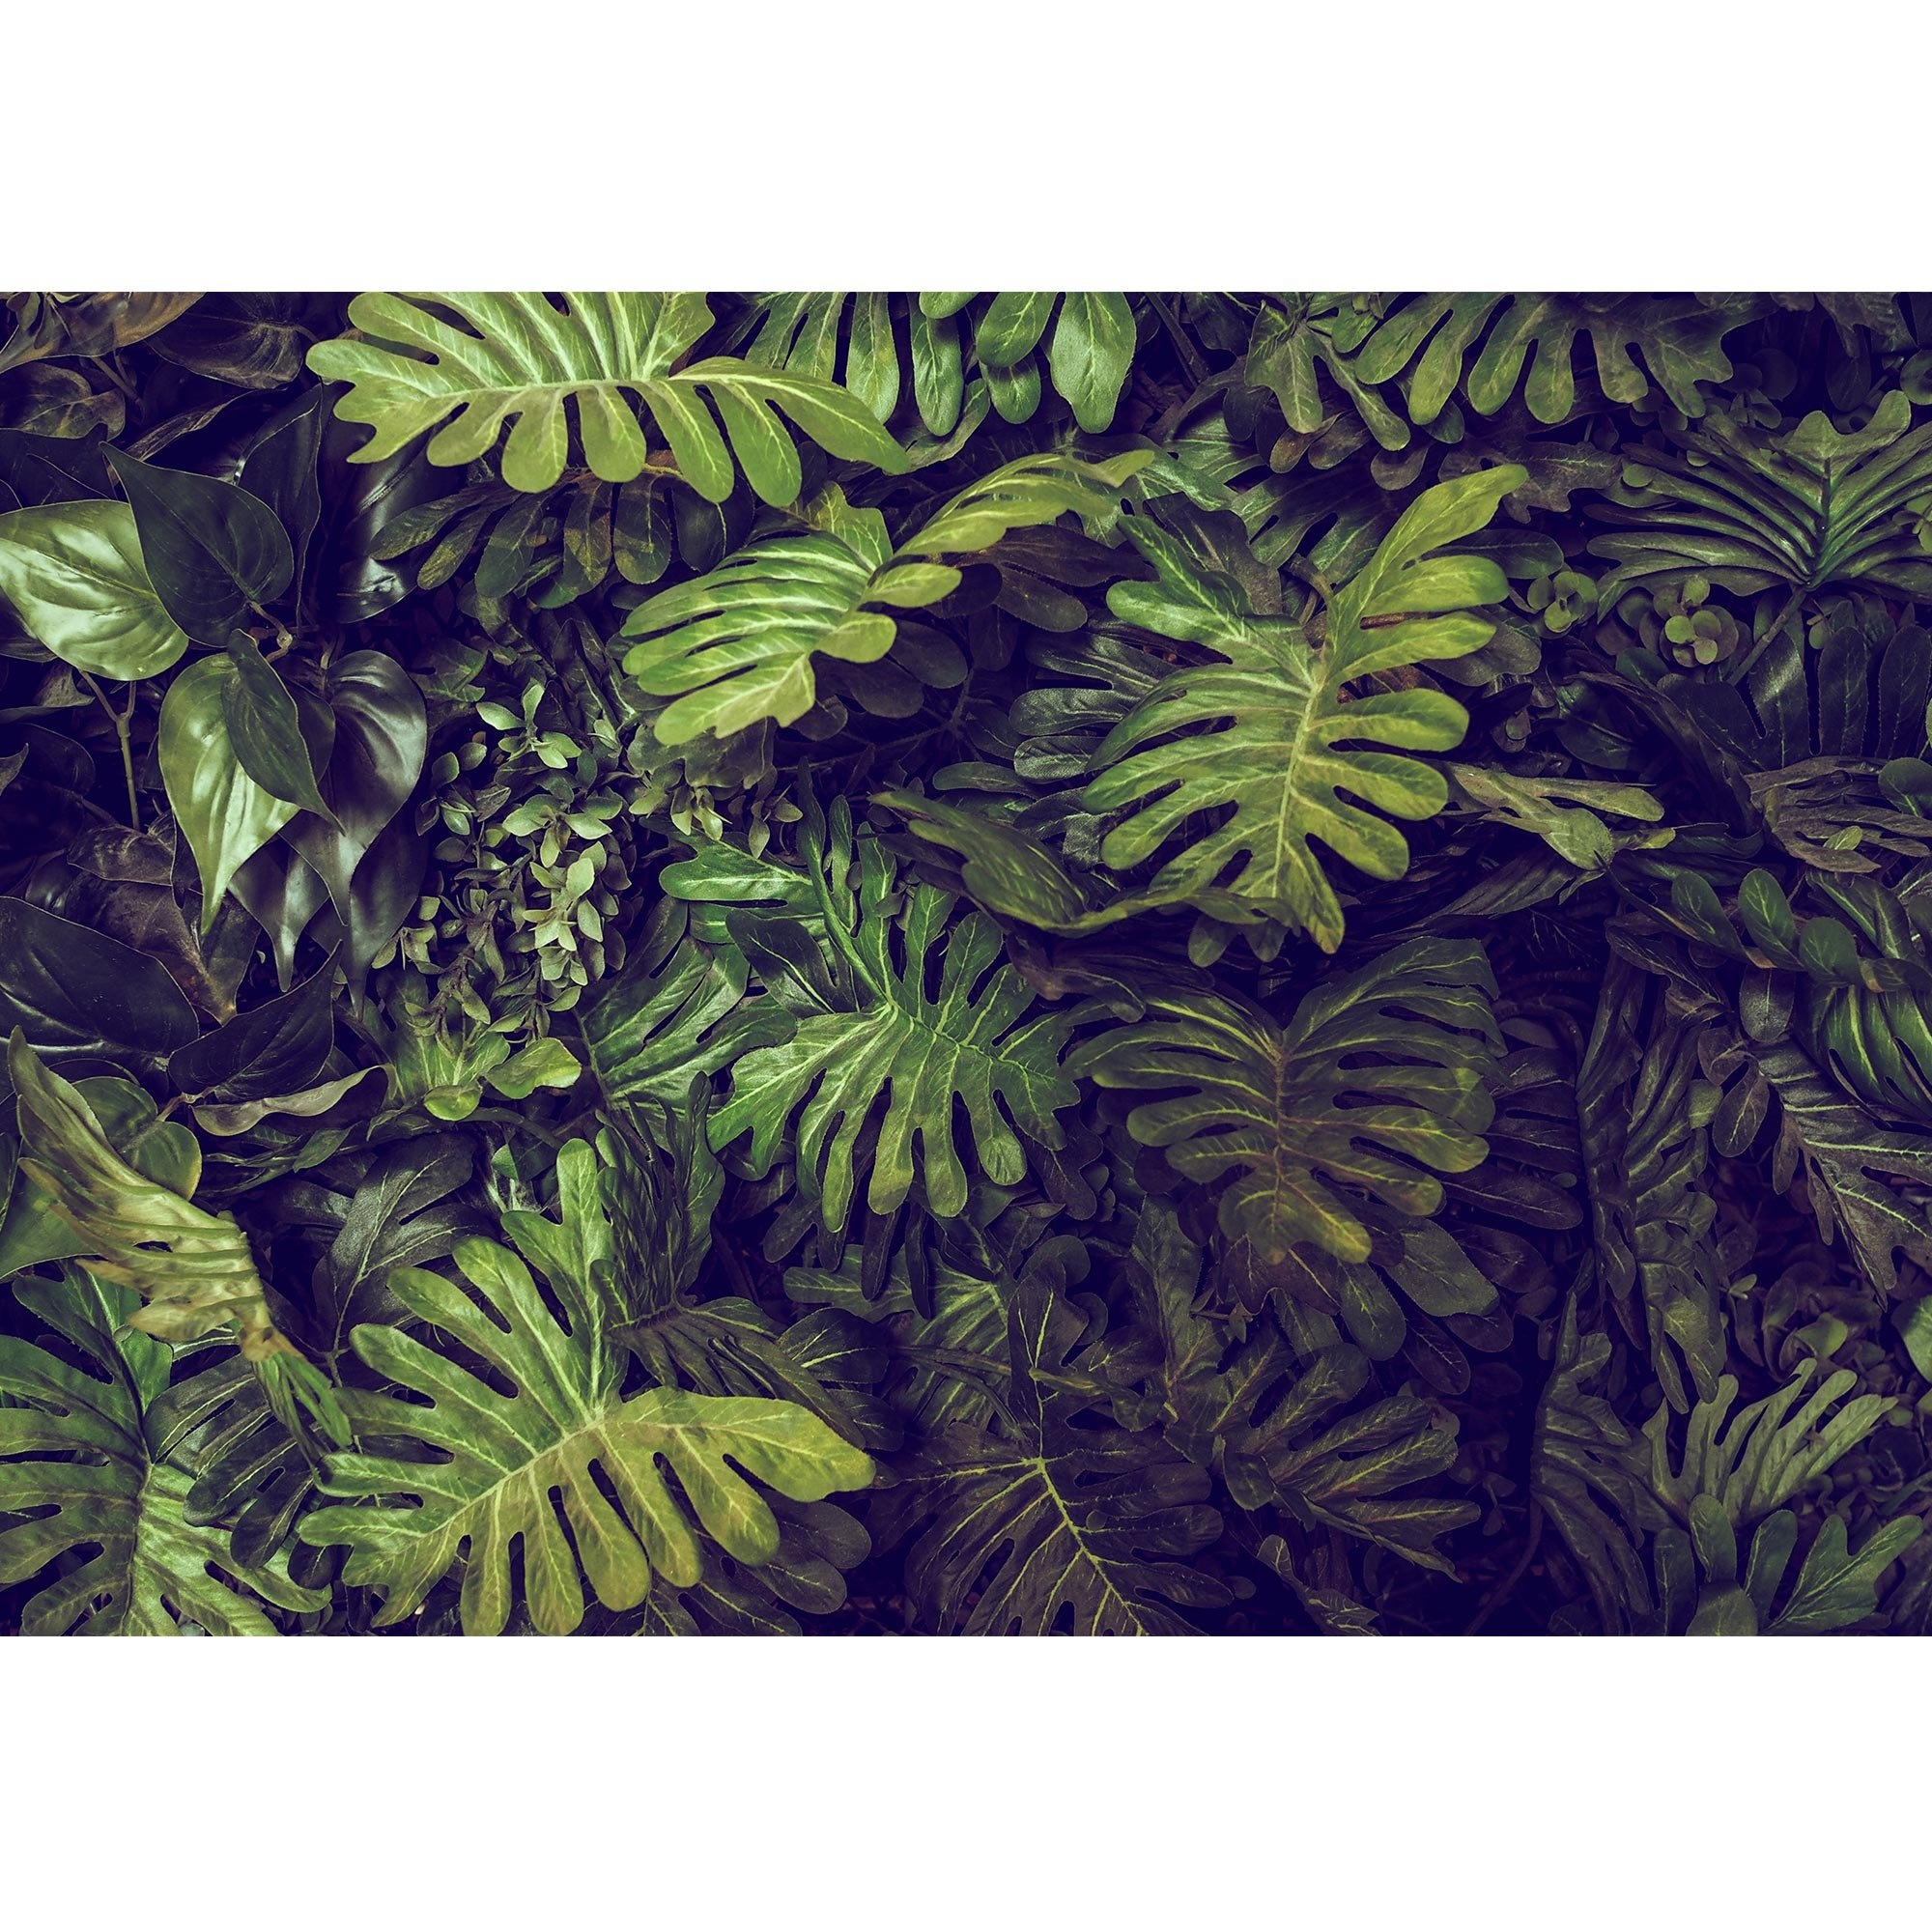 wall26 - Green Monstera Leaves Texture for Background - Top View - in Dark Tone. - Removable Wall Mural | Self-Adhesive Large Wallpaper - 100x144 inches by wall26 (Image #2)